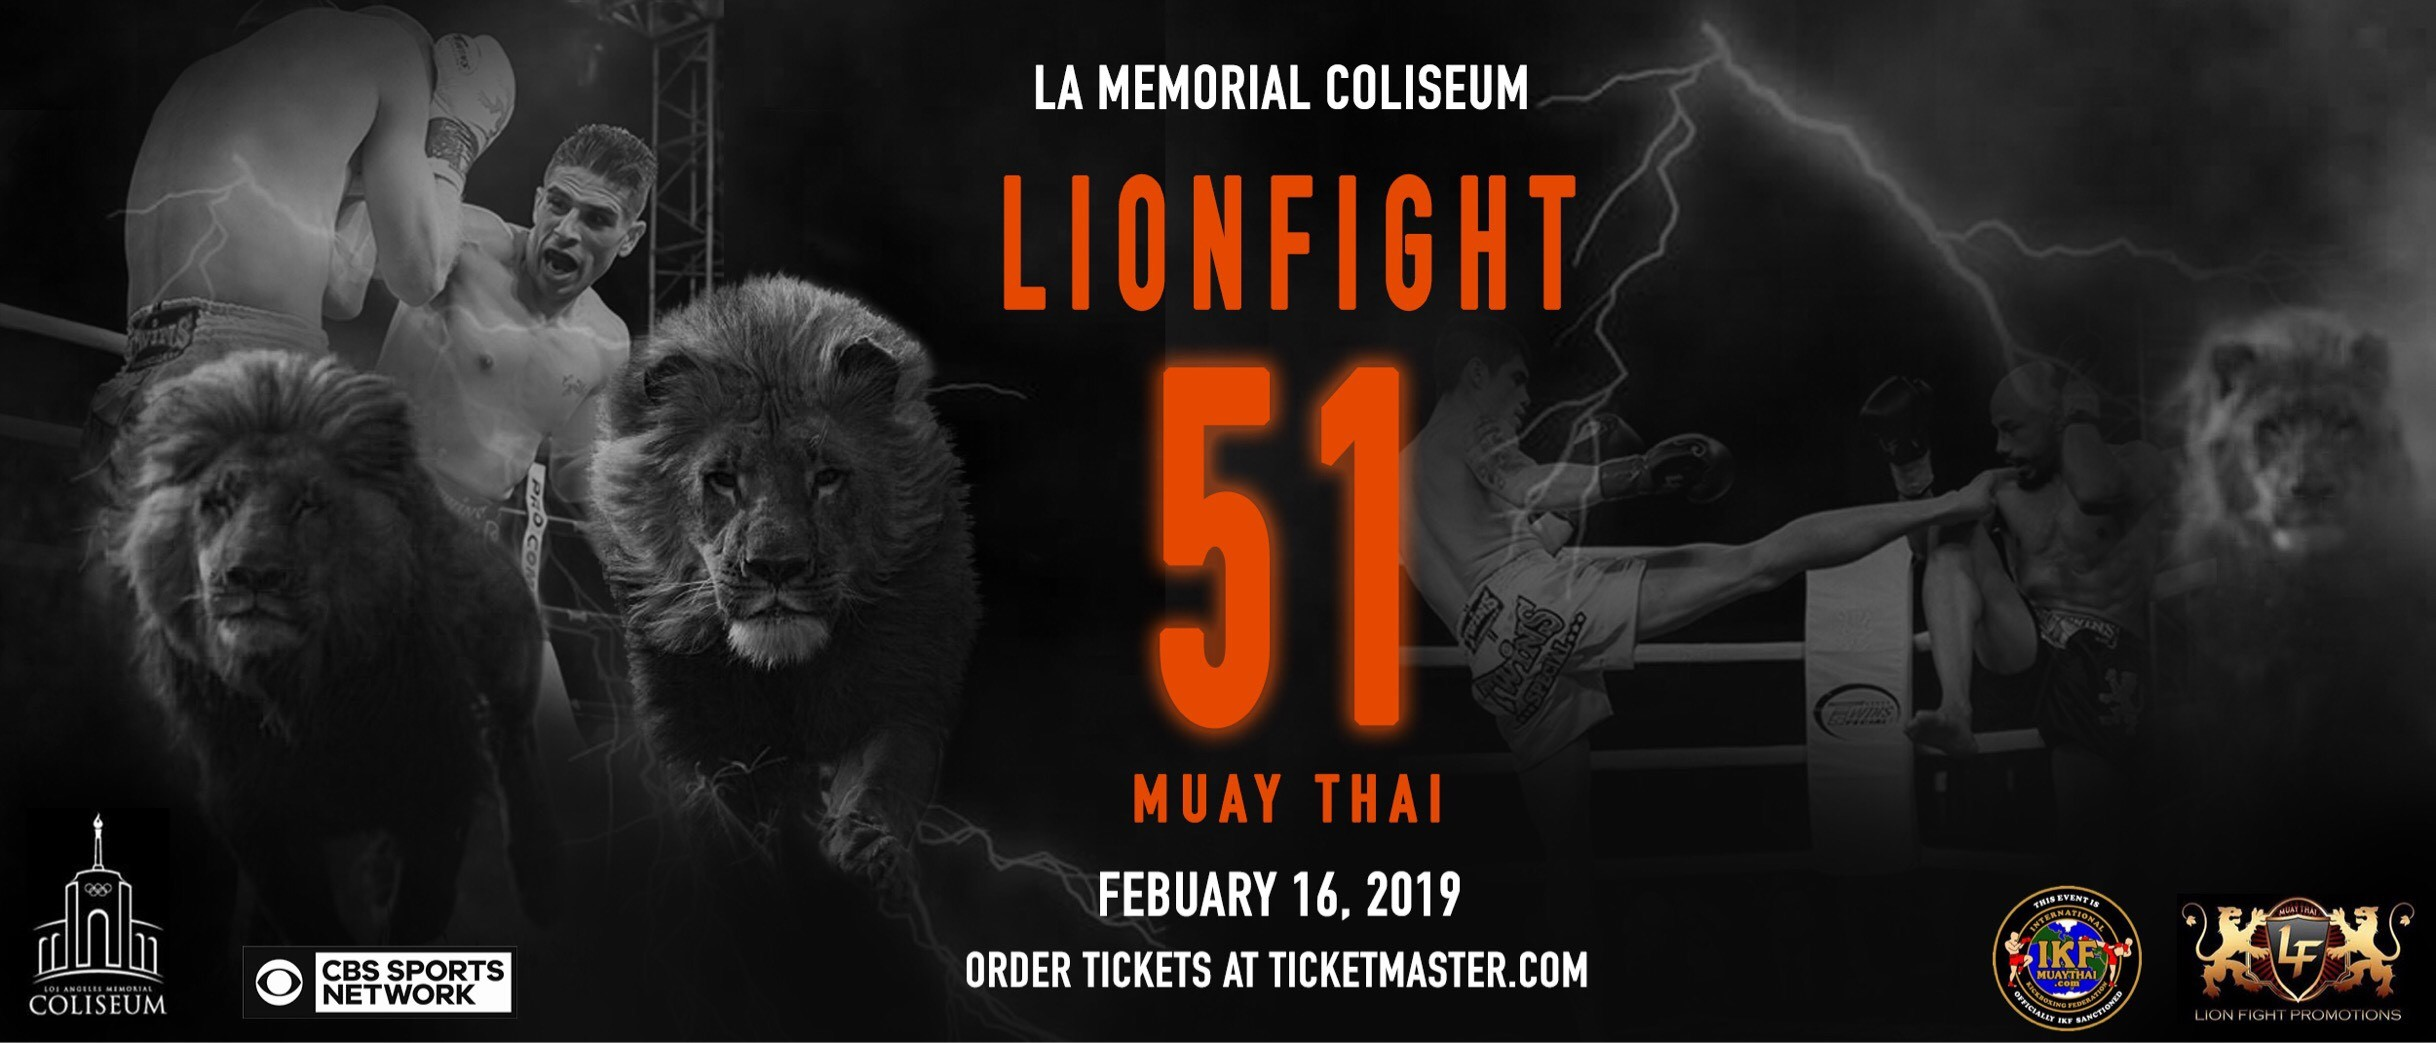 LION FIGHT 51